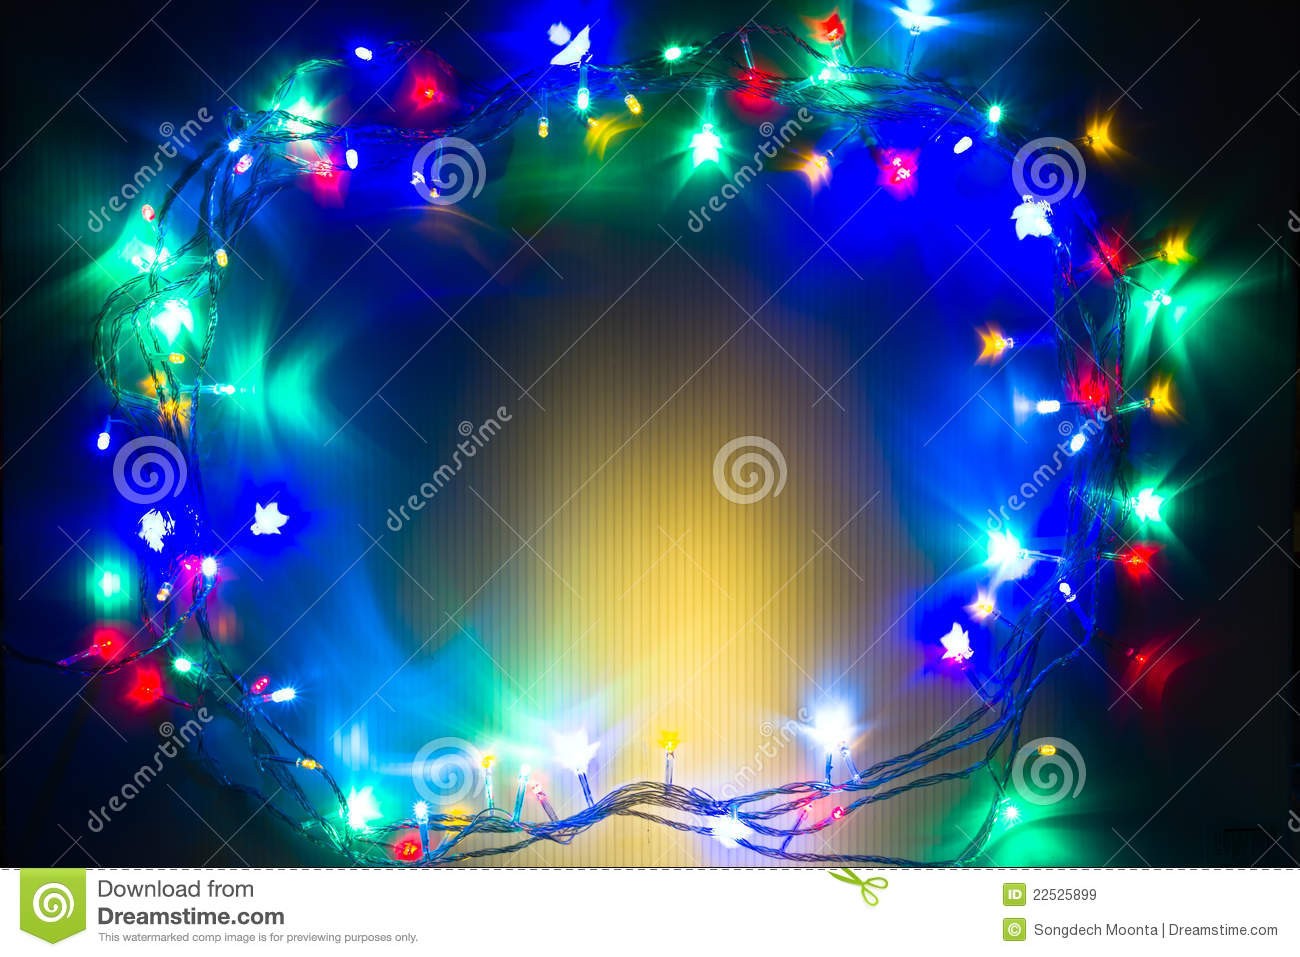 img christmas for help light organization fundraise display lights and commercial make money lighting led displays